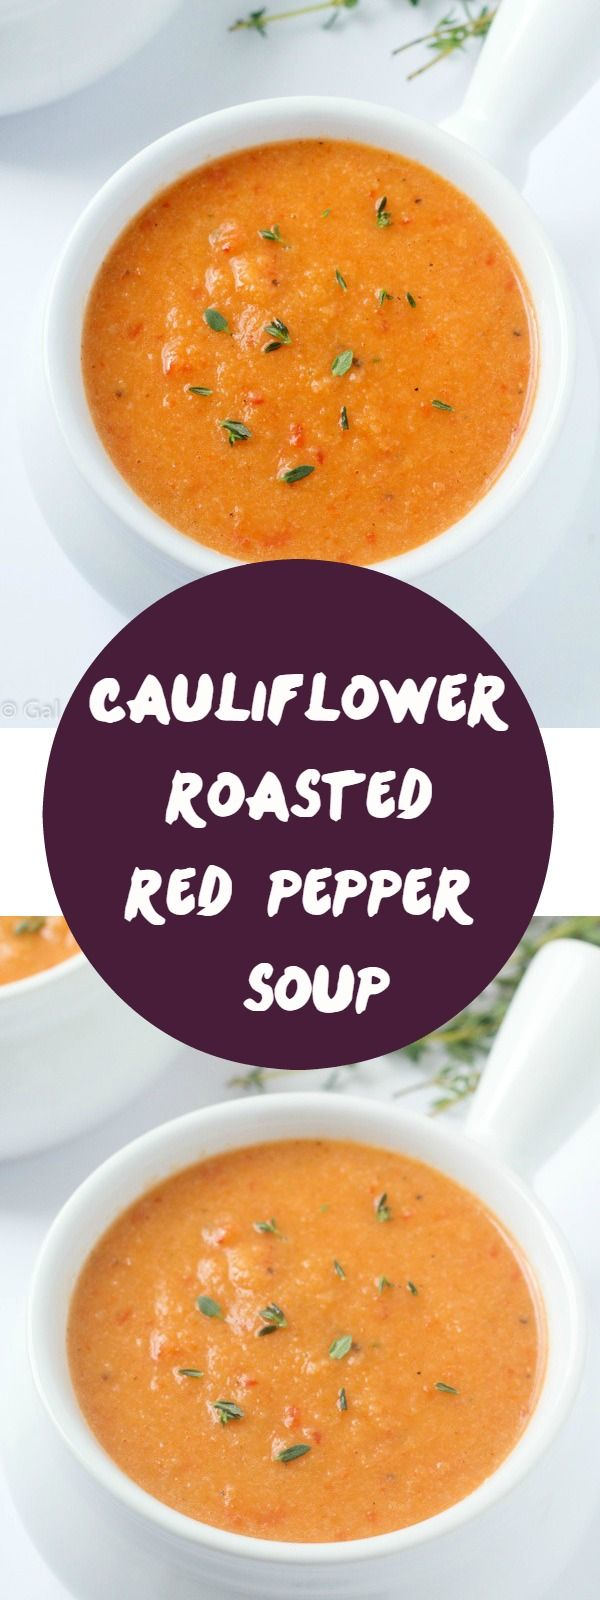 An out-of-this-world delicious cauliflower roasted red pepper soup recipe! This…